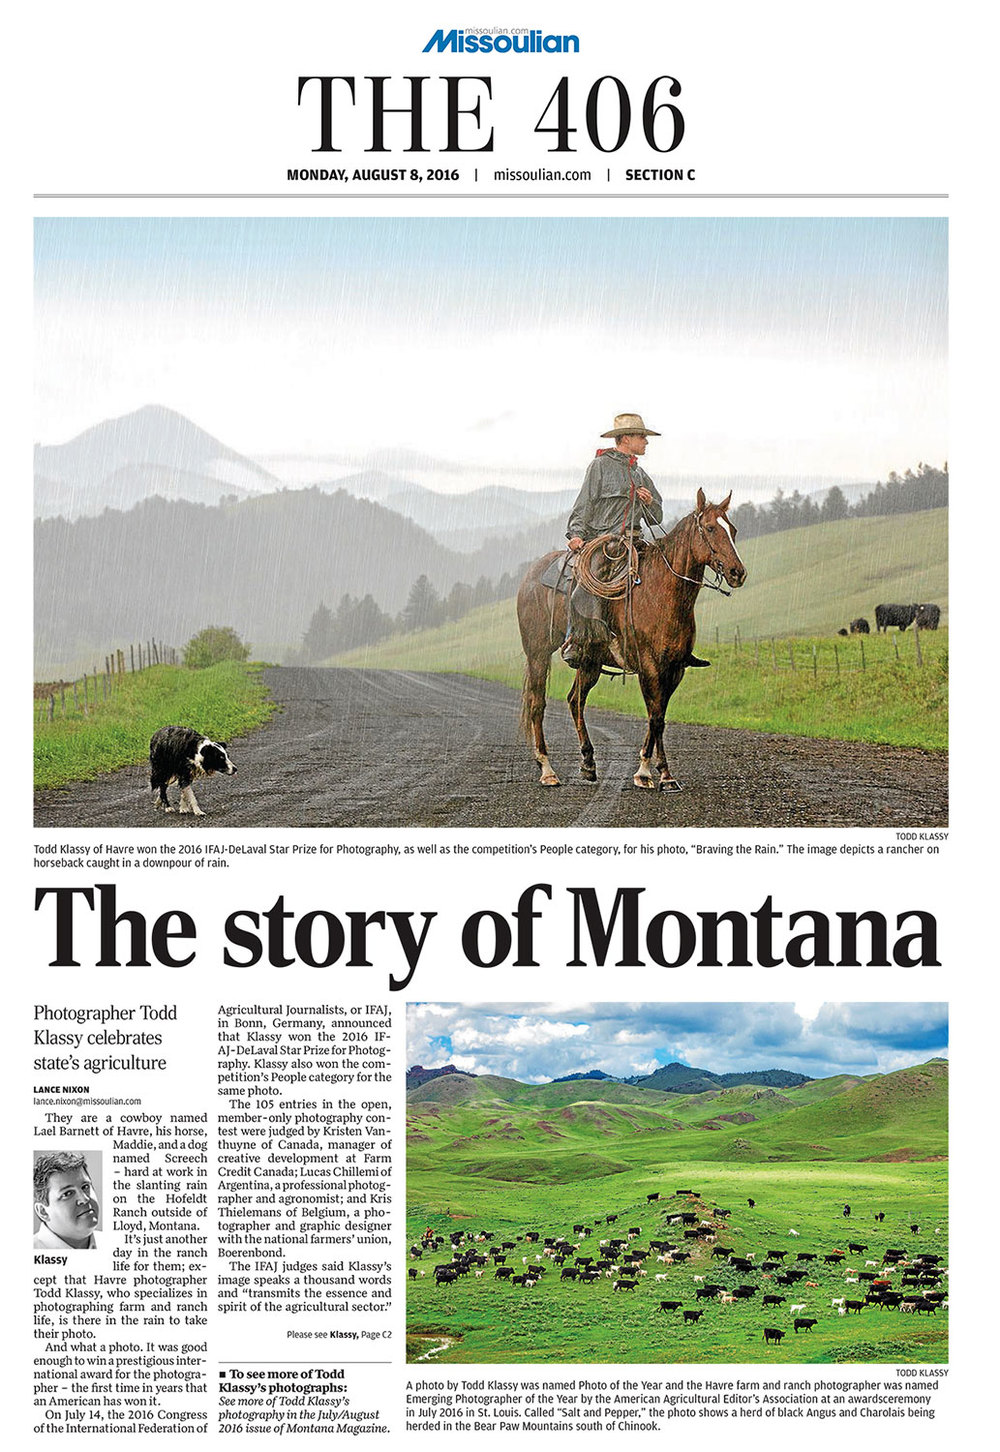 The Missoulian